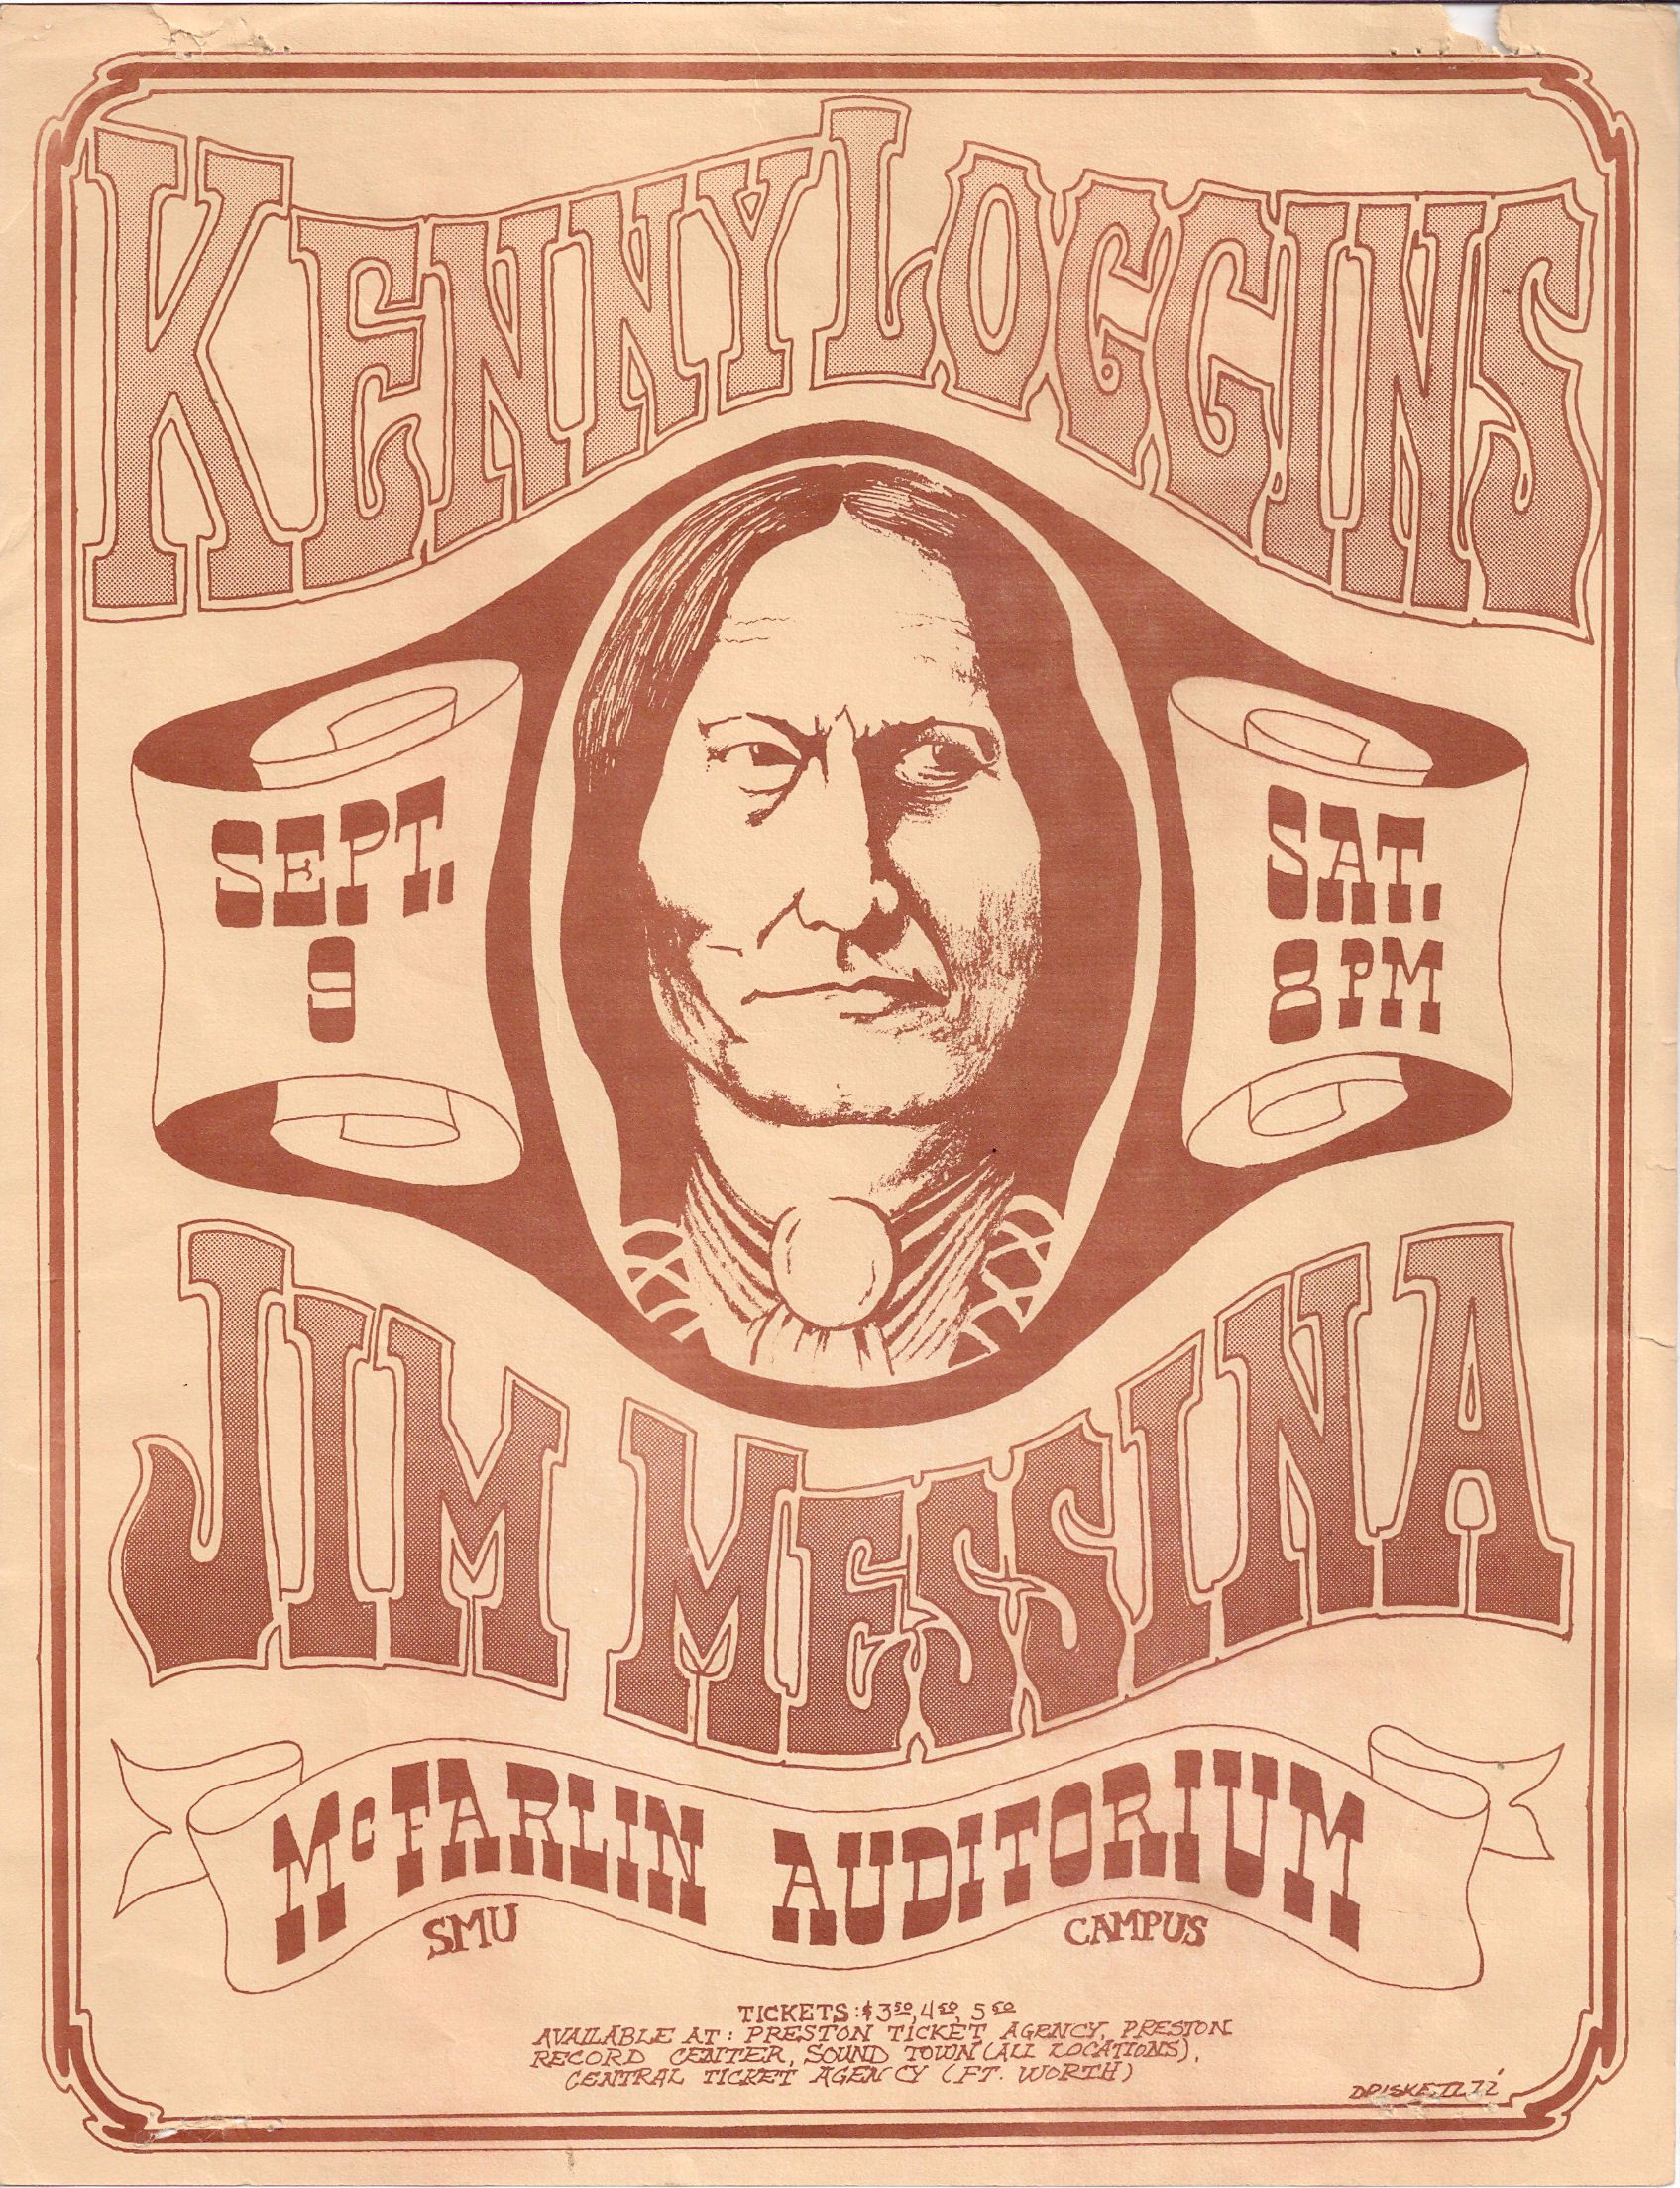 Loggins & Messina Handbill Psychedelic rock, Cool album